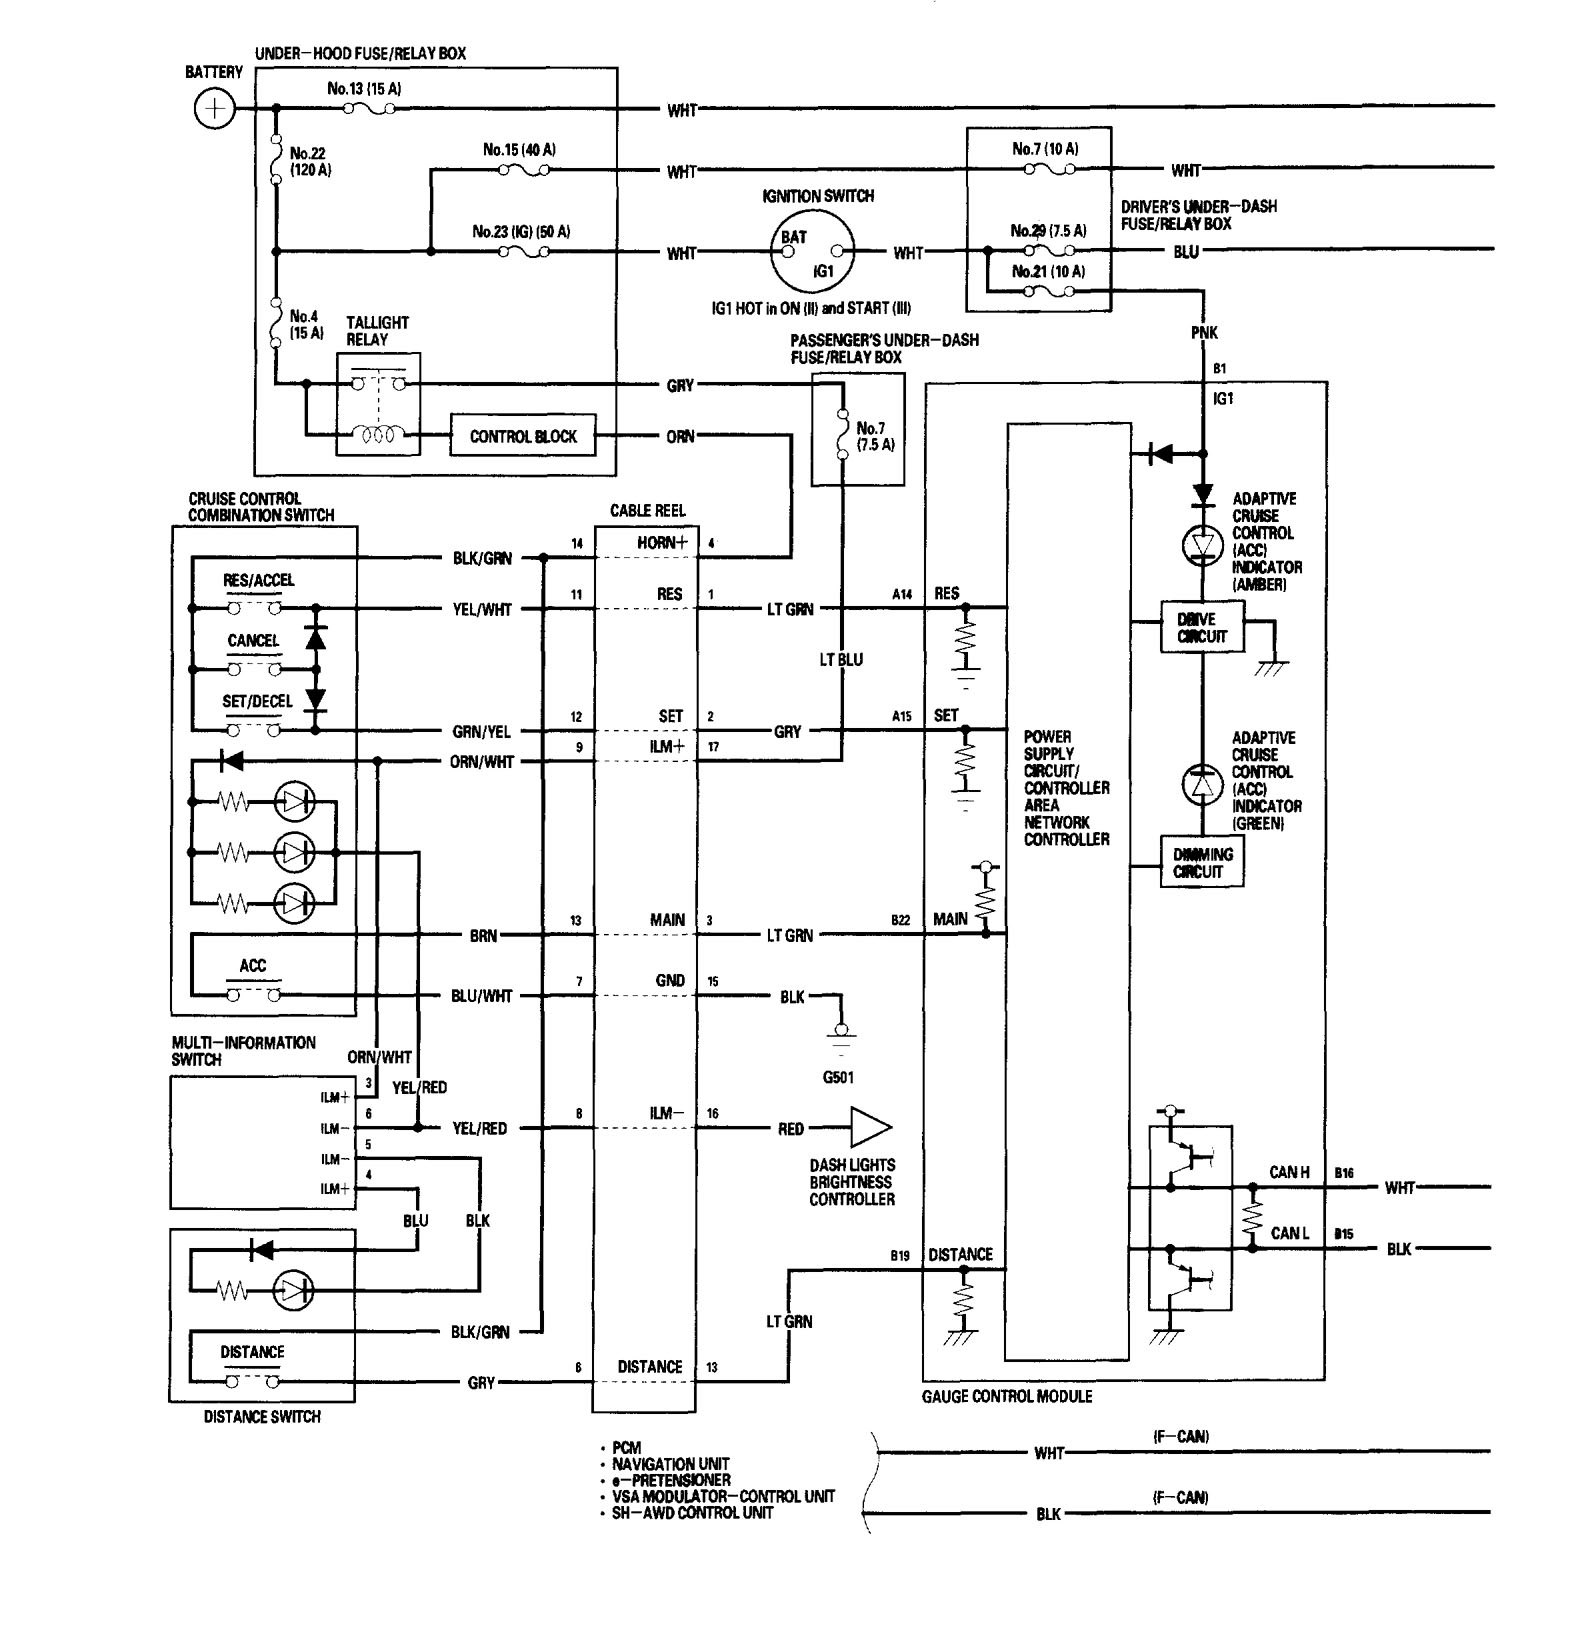 Acura RL (2006) - wiring diagrams - speed control - Carknowledge.info | Acura Cruise Control Diagram |  | Carknowledge.info